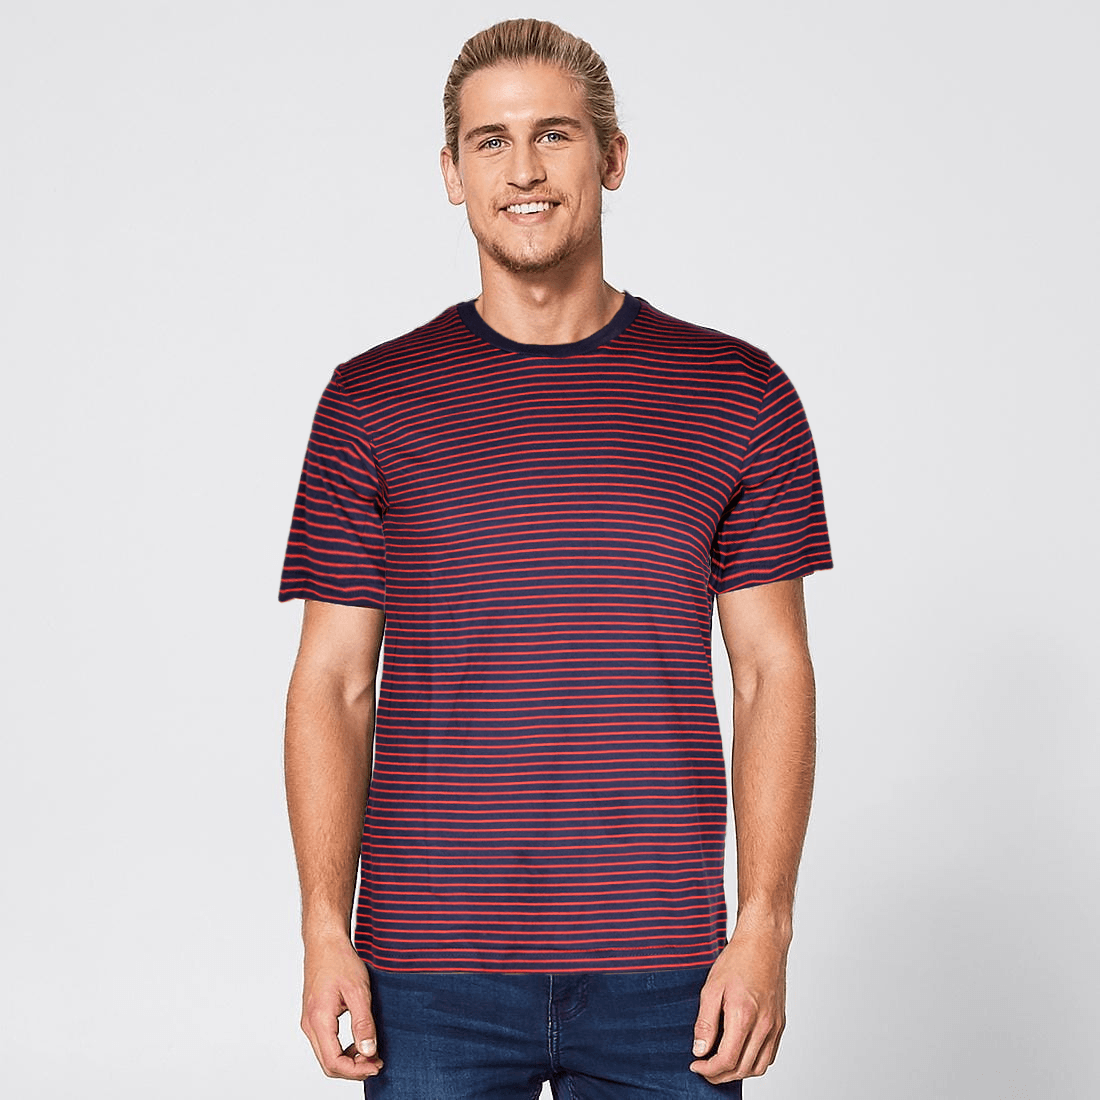 Pull&Bear Dazzling Stripes Crew Neck Tee Shirt